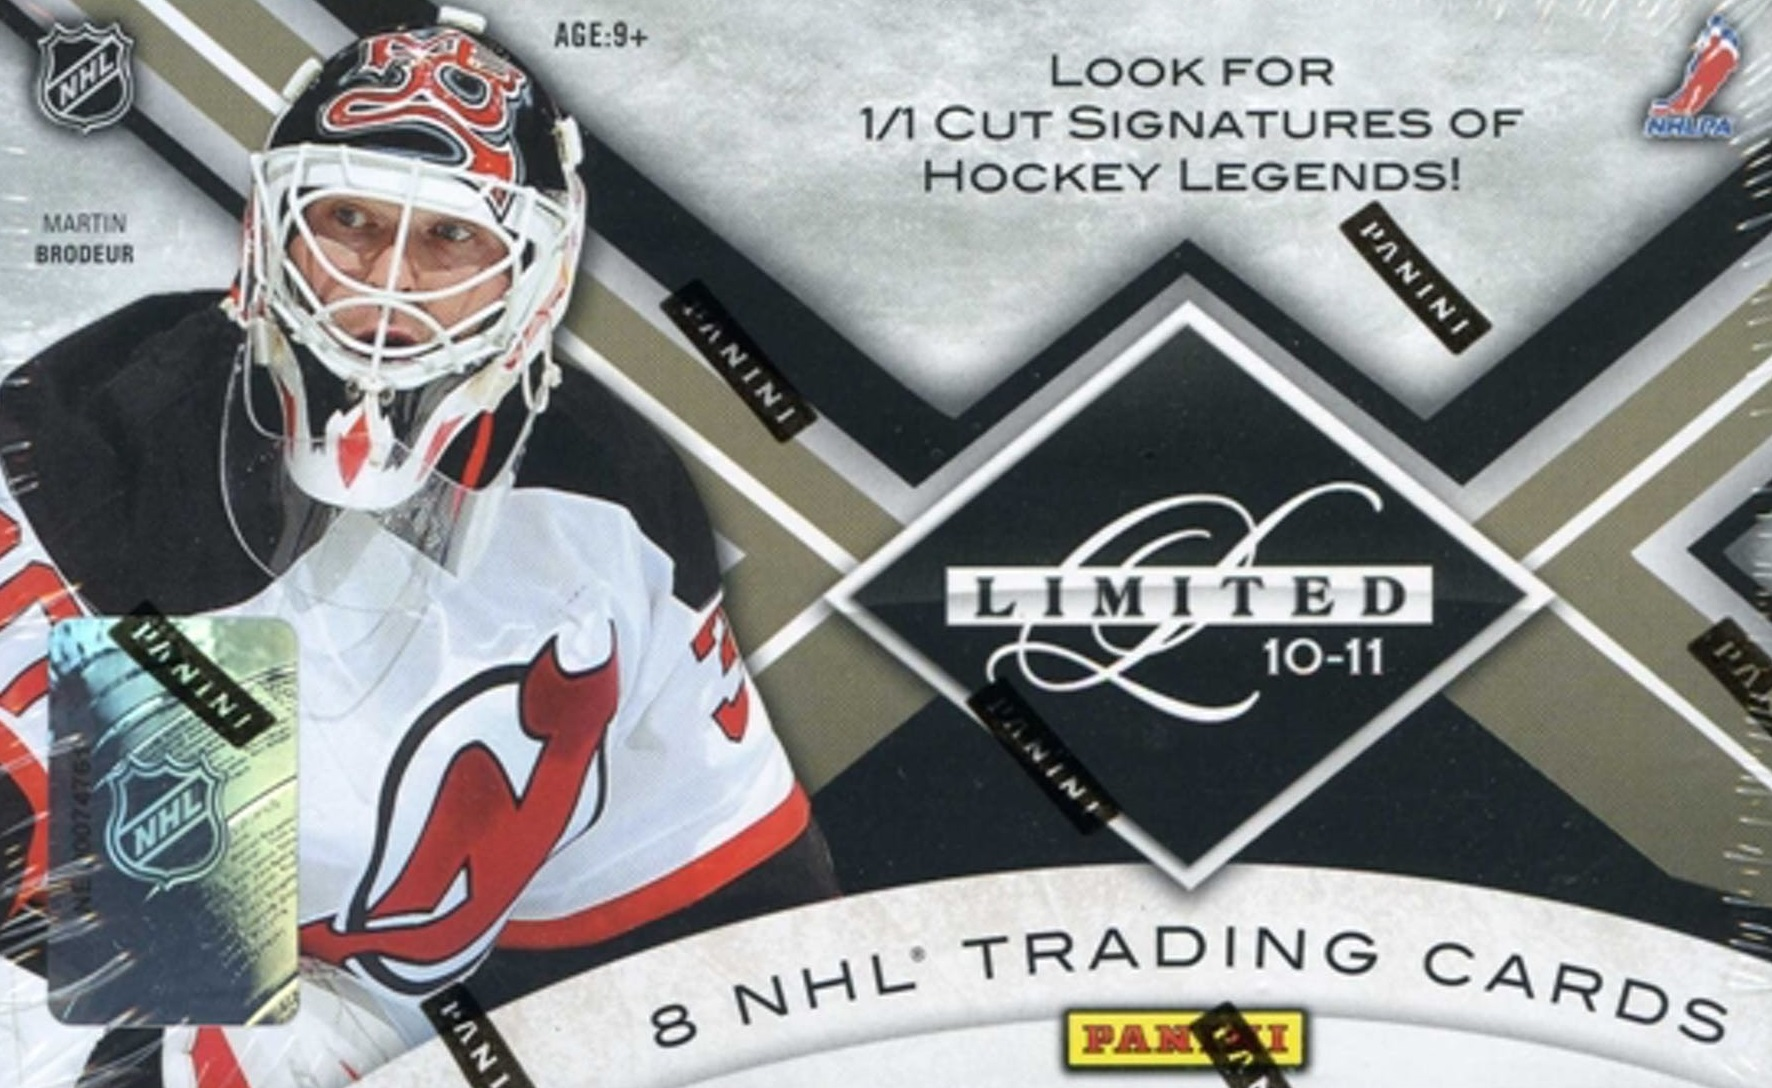 2010-11 Panini Limited Hockey Checklist